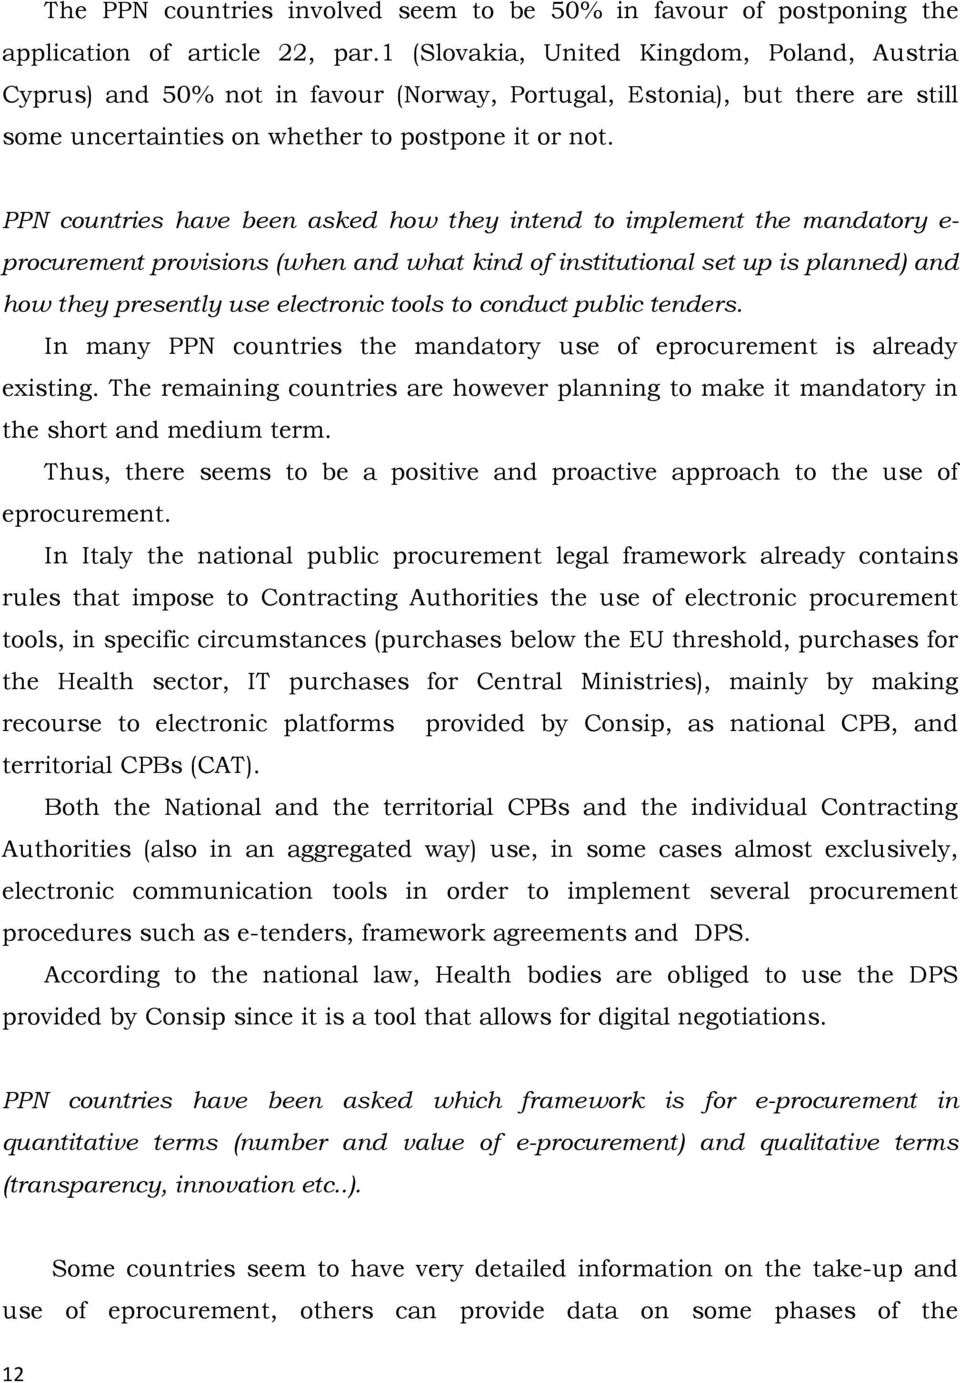 PPN countries have been asked how they intend to implement the mandatory e- procurement provisions (when and what kind of institutional set up is planned) and how they presently use electronic tools